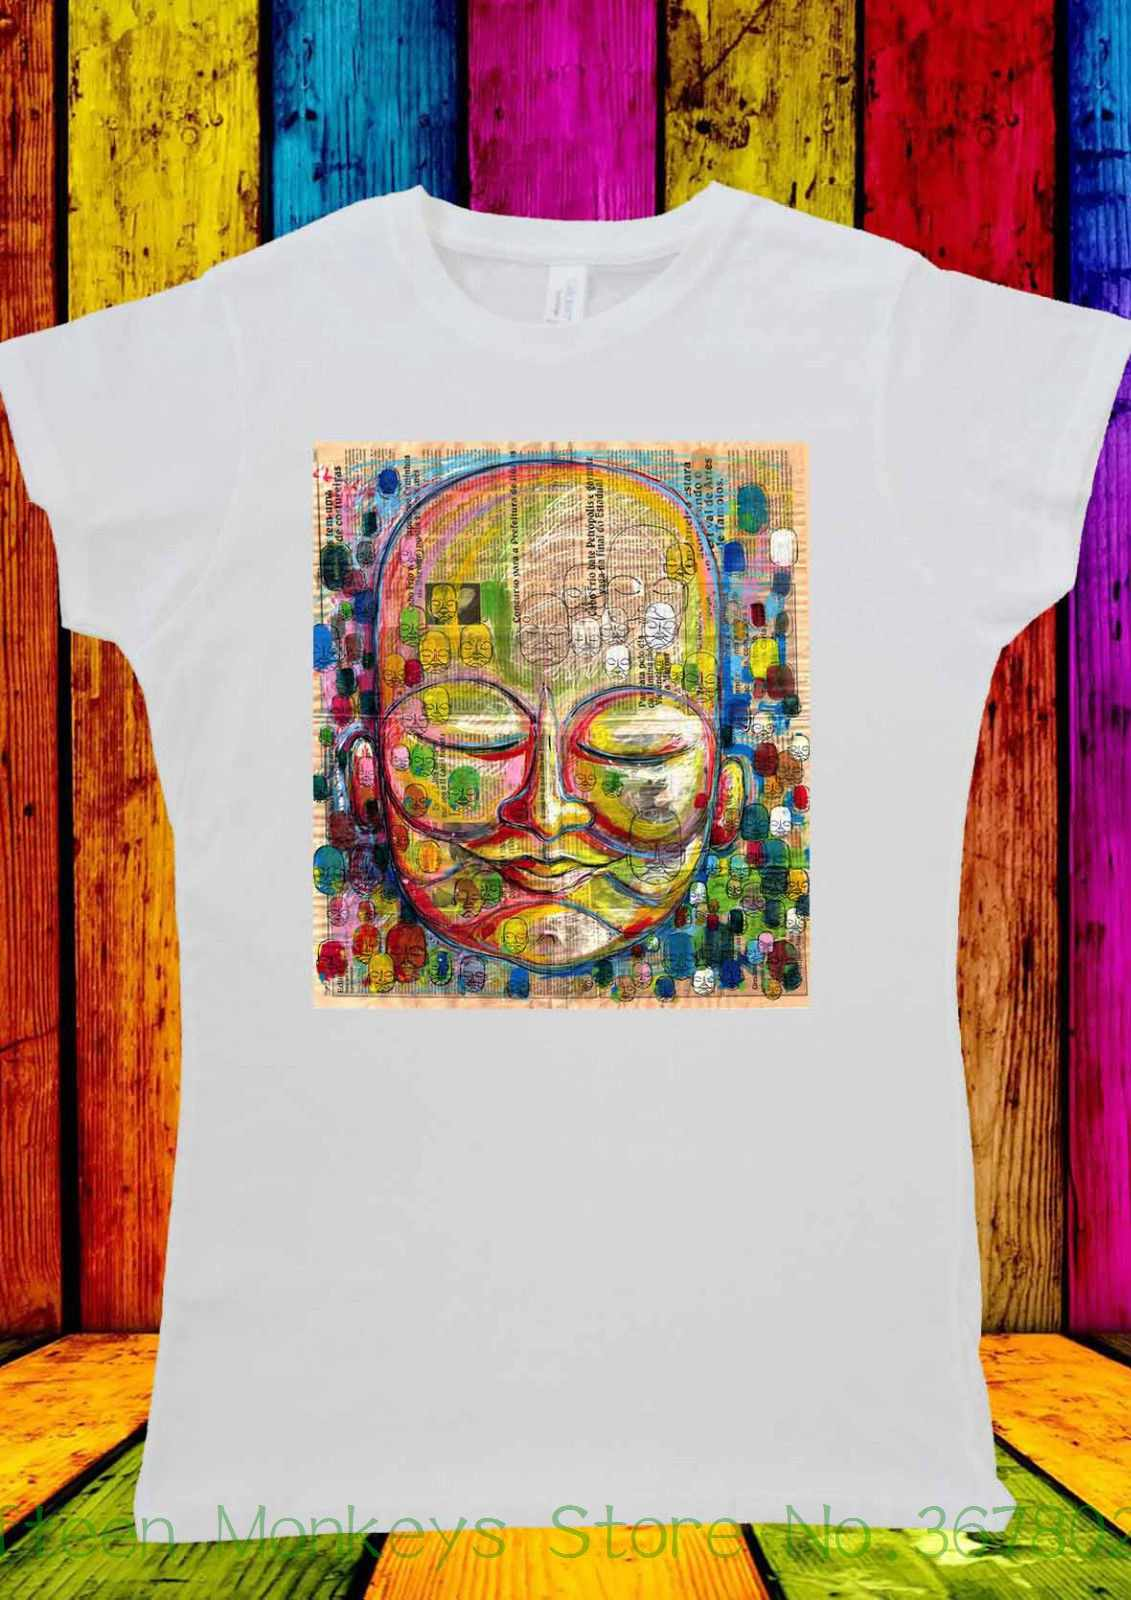 Women's Tee Gautama Buddha Budda Design Tumblr T-shirt Men Women Unisex 1506 Short Sleeve Cool Casual